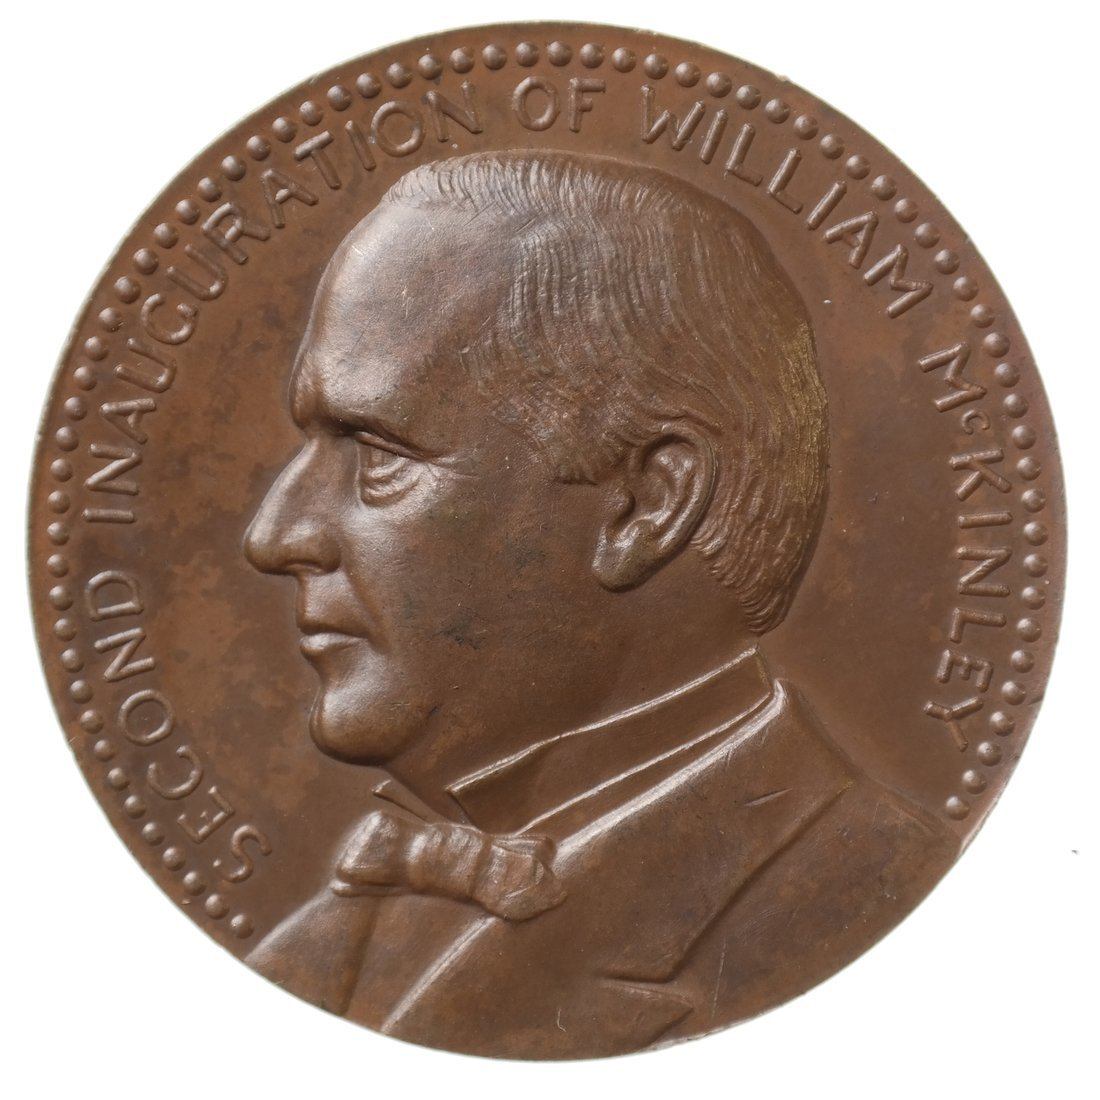 William McKinley Second Inaugural Medal, 1901.